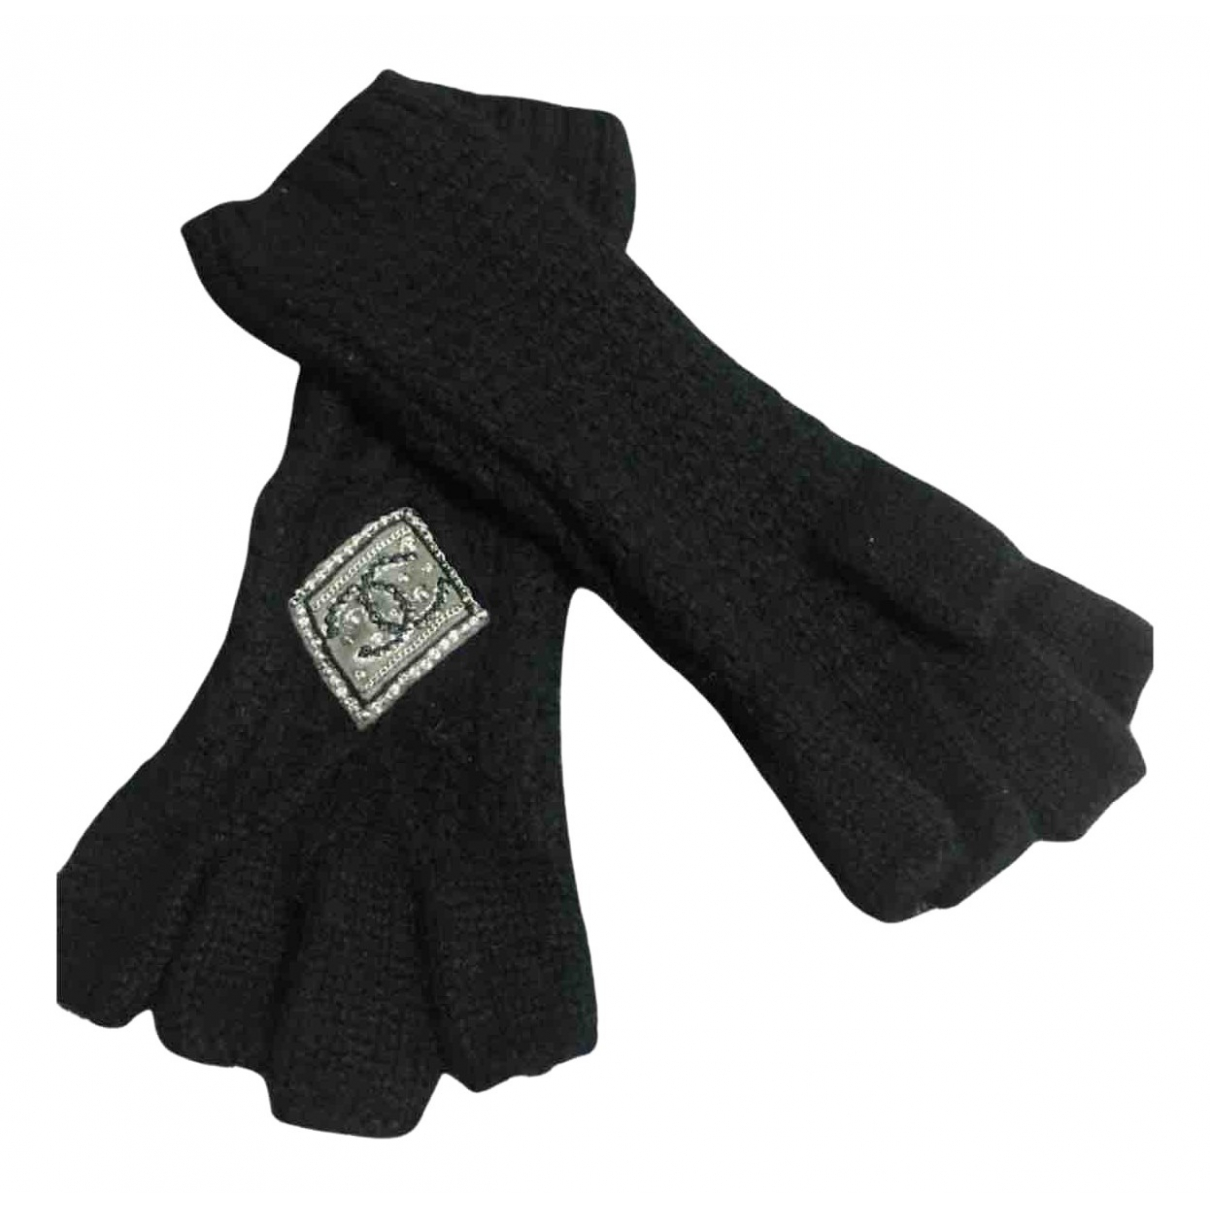 Chanel N Black Cashmere Gloves for Women M International